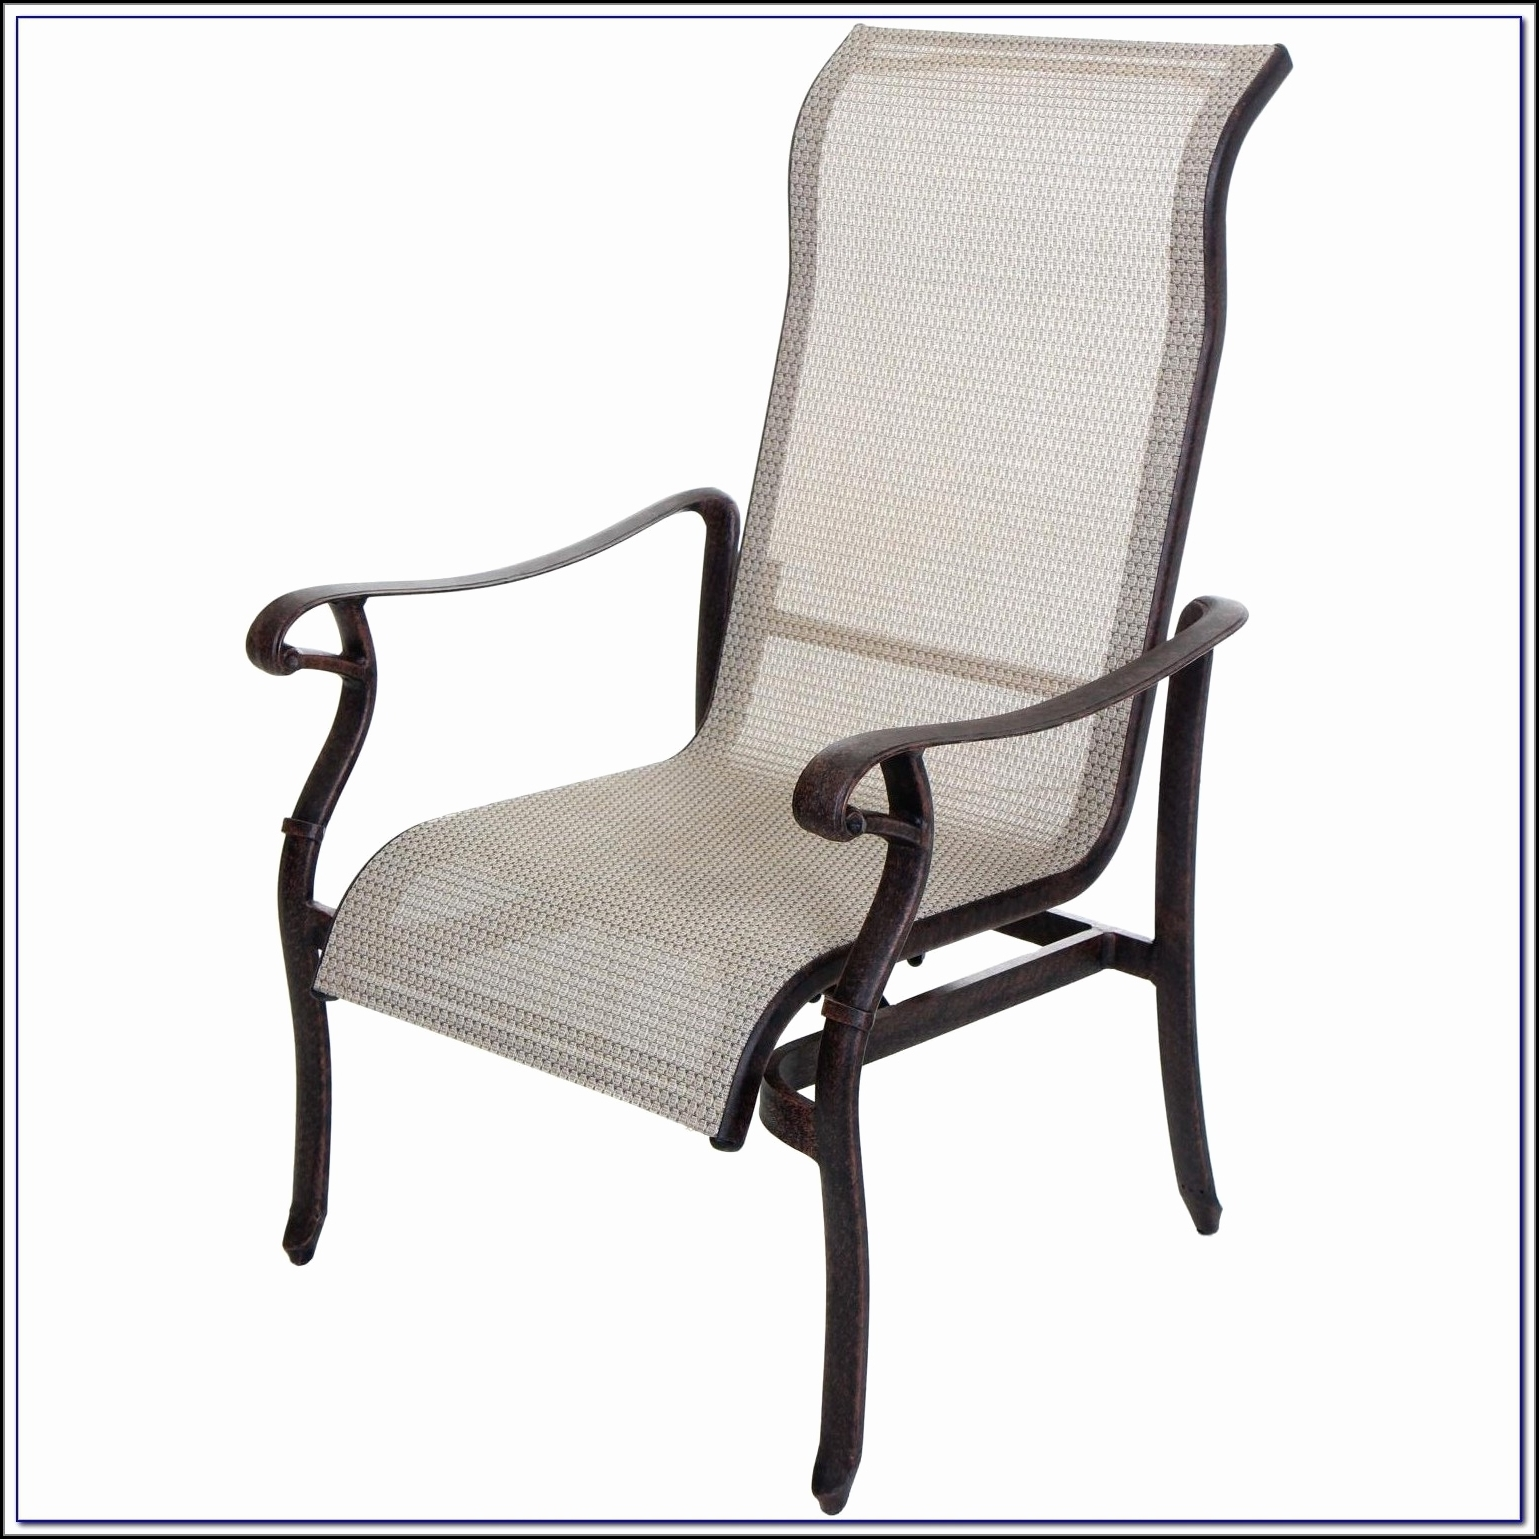 Best And Newest Wrought Iron Chaise Lounges Inside Outdoor : Folding Lounge Chair Indoor Wrought Iron Chaise Lounge (View 2 of 15)